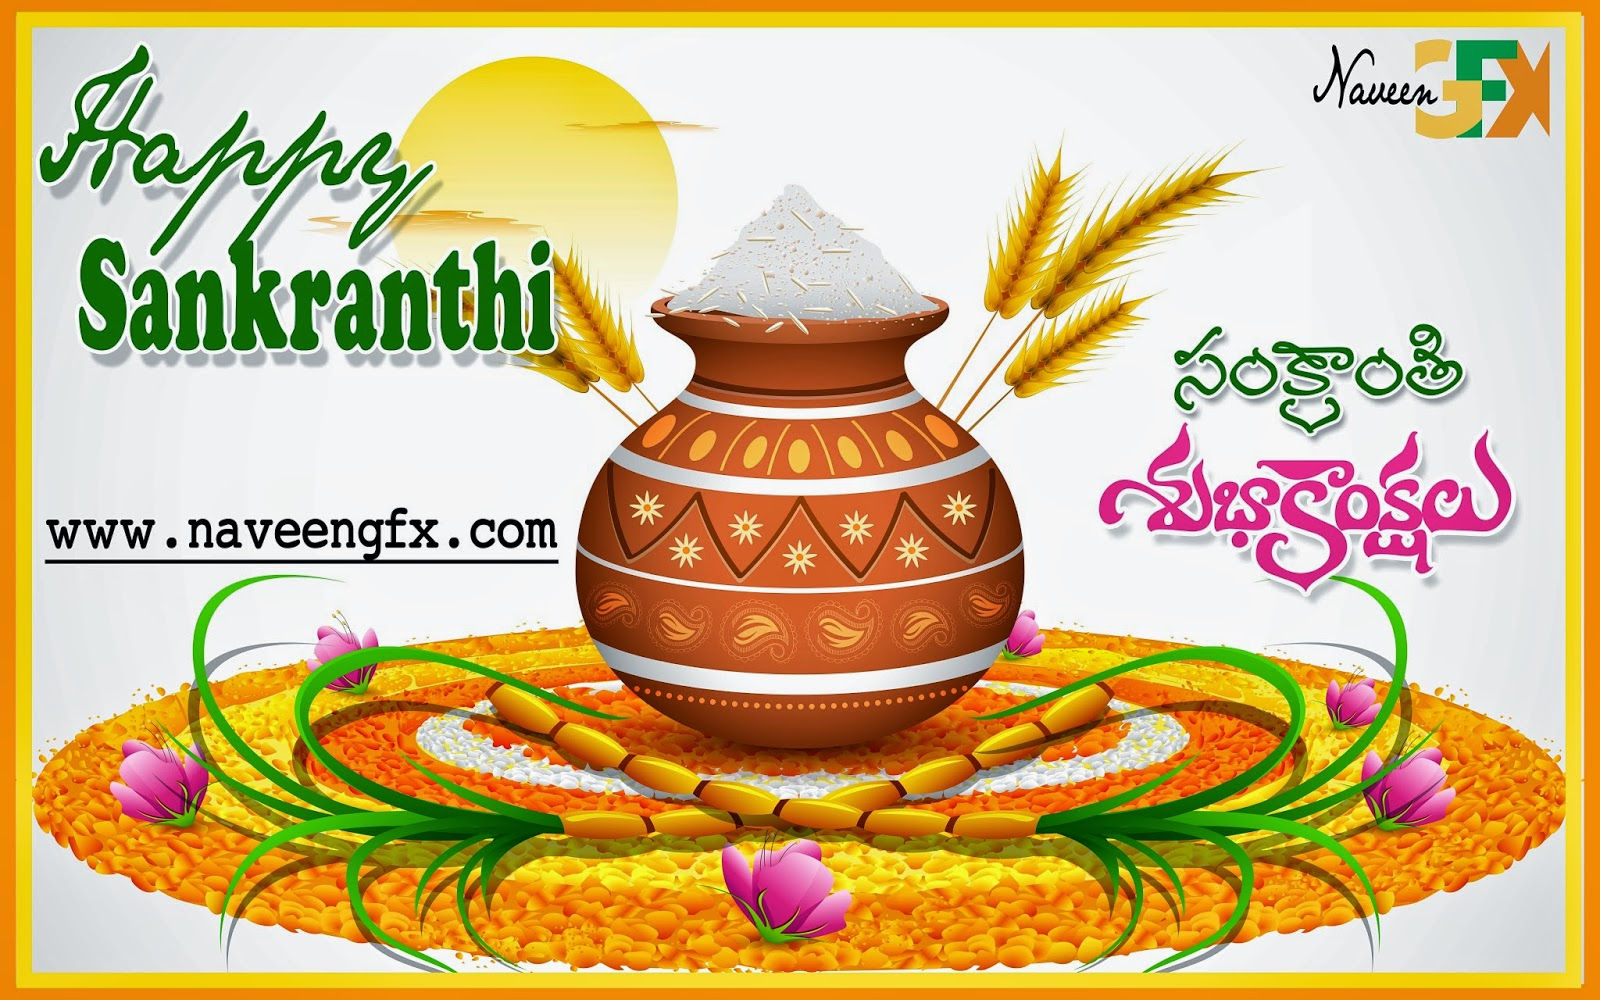 telugu-sankranti-quotes-and-greetings-with-images-naveengfx.com